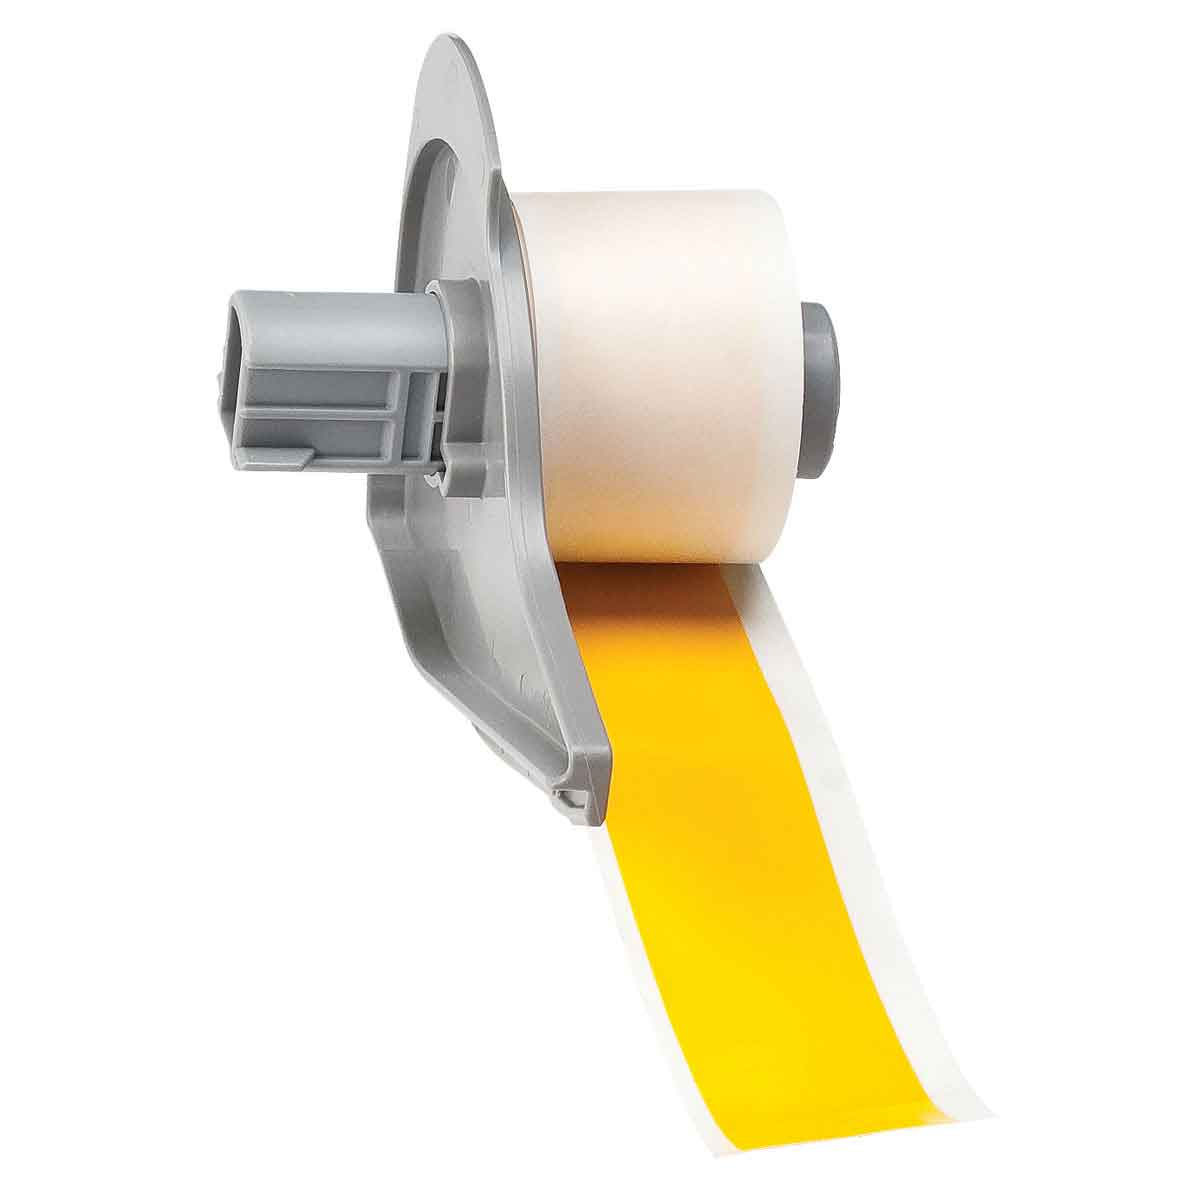 Brady® M71C-1000-595-YL Blank Thermal Transfer Tape, 50 ft L x 1 in W, Yellow, B-595 Vinyl, Permanent Acrylic Adhesive, -40 to 180 deg F